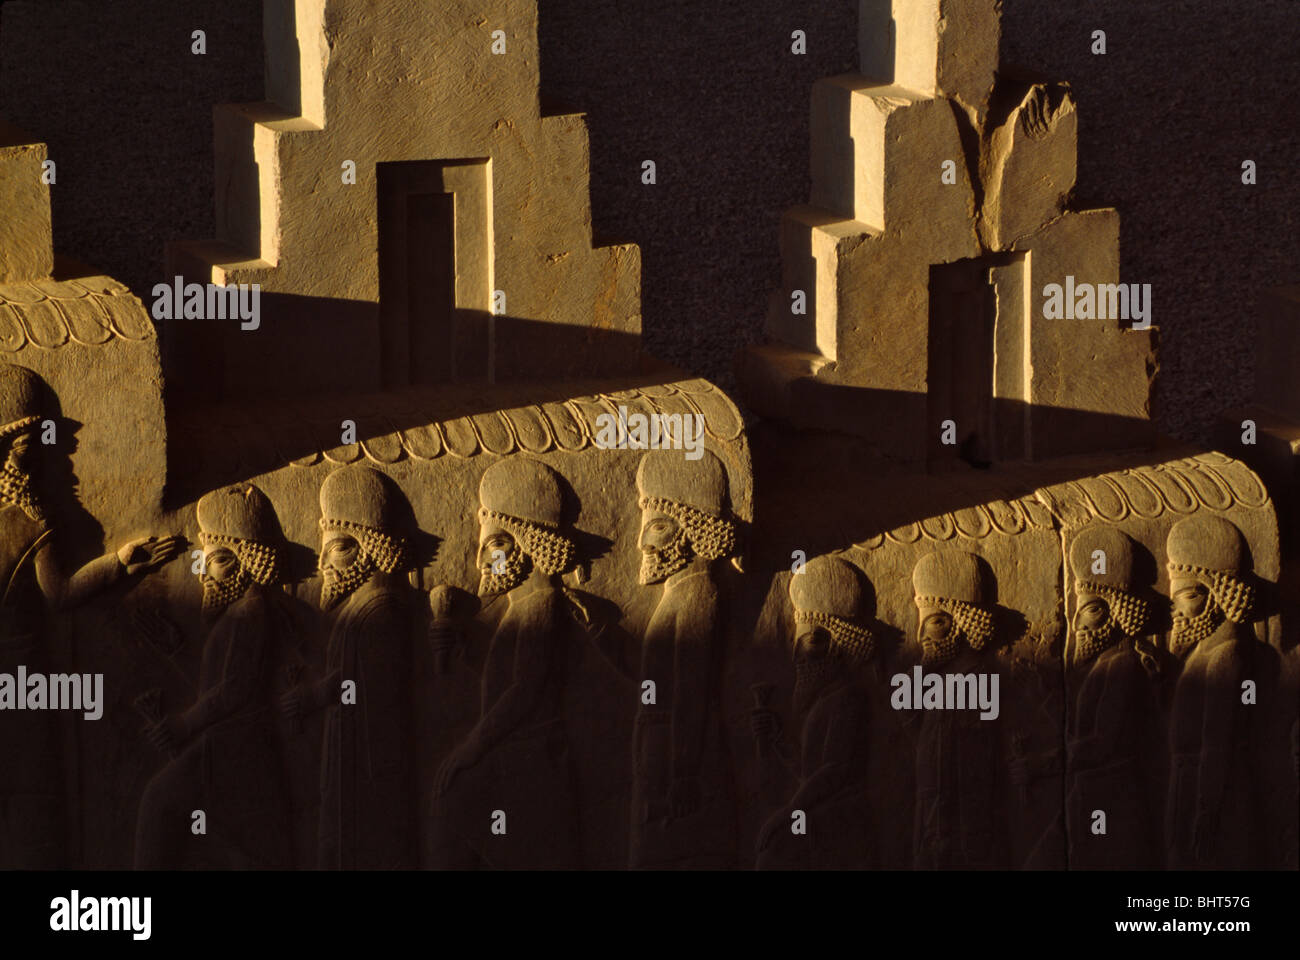 Sculpture Relief de l'objet de l'Empire personnes Achaemenian grimper l'escalier Persepolis, Iran Photo Stock